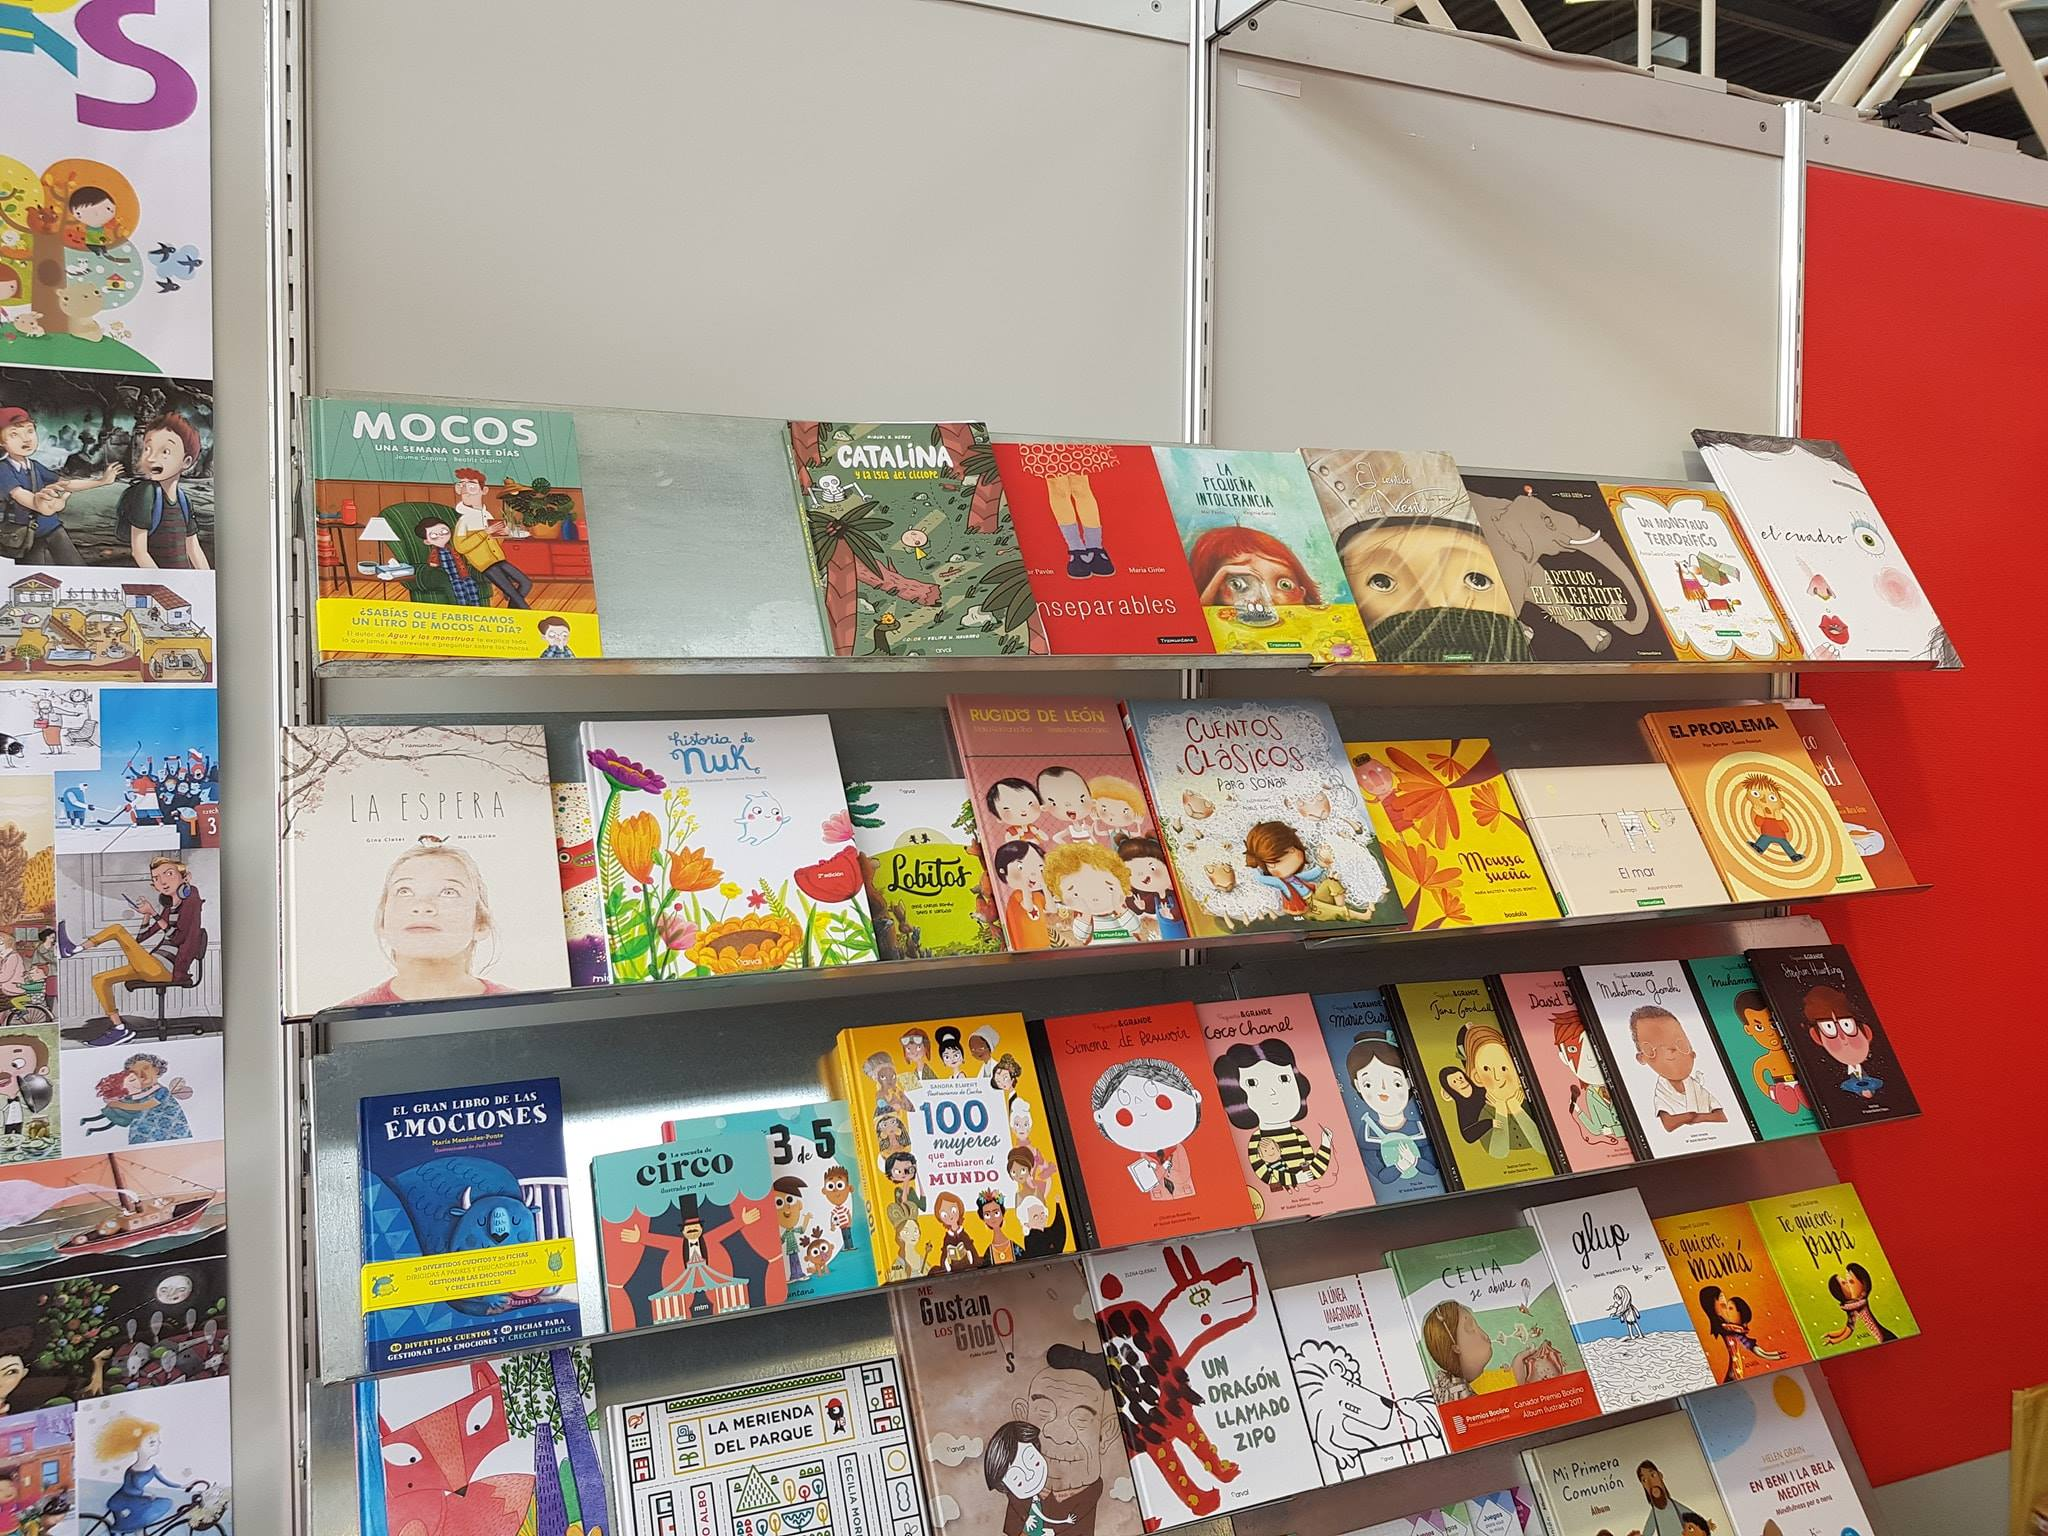 Bologna Children's Book Fair. Del 1 al 4 de abril de 2019